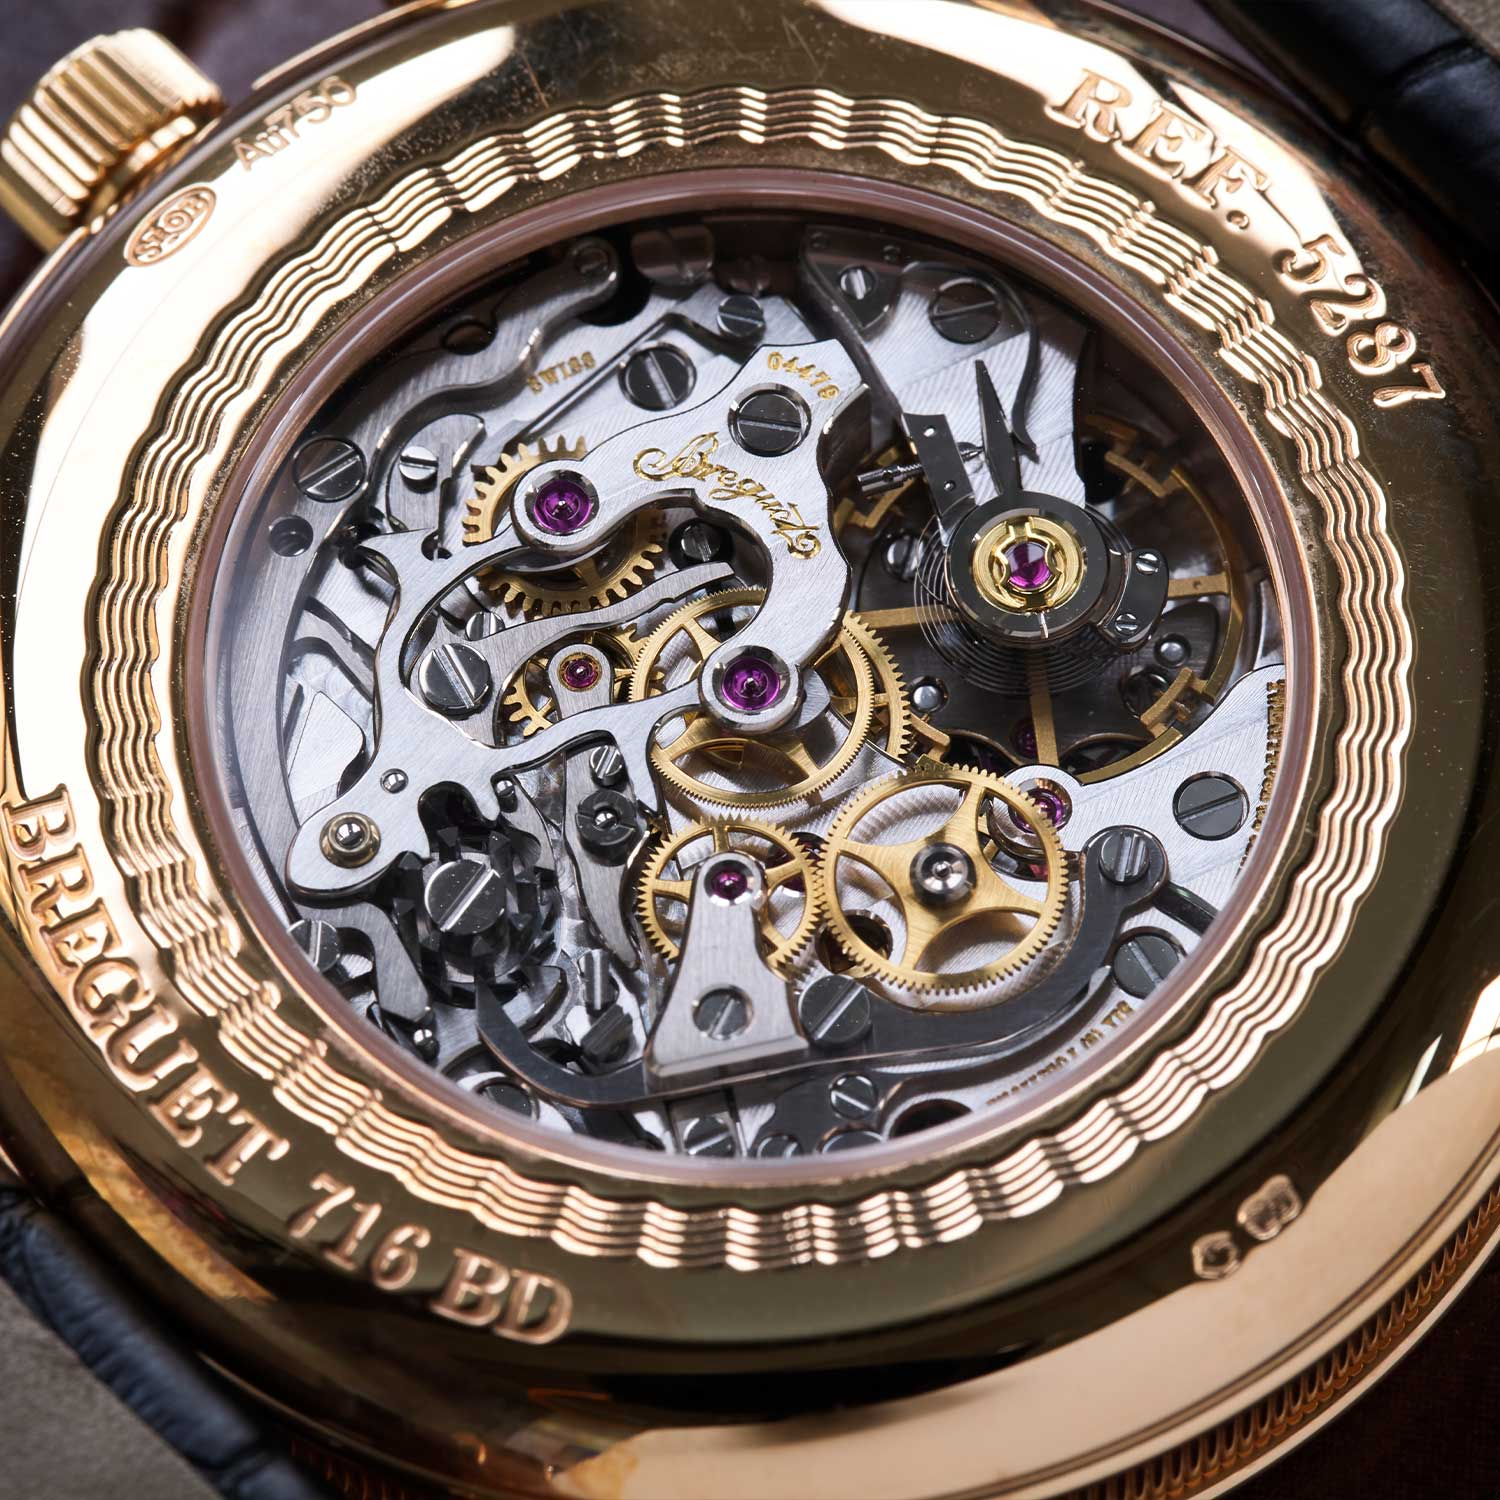 Breguet's version of the Lemania 2320 is the only one with 24 jewels, possibly owing to the power reserve indicator on the dial side (©Revolution)